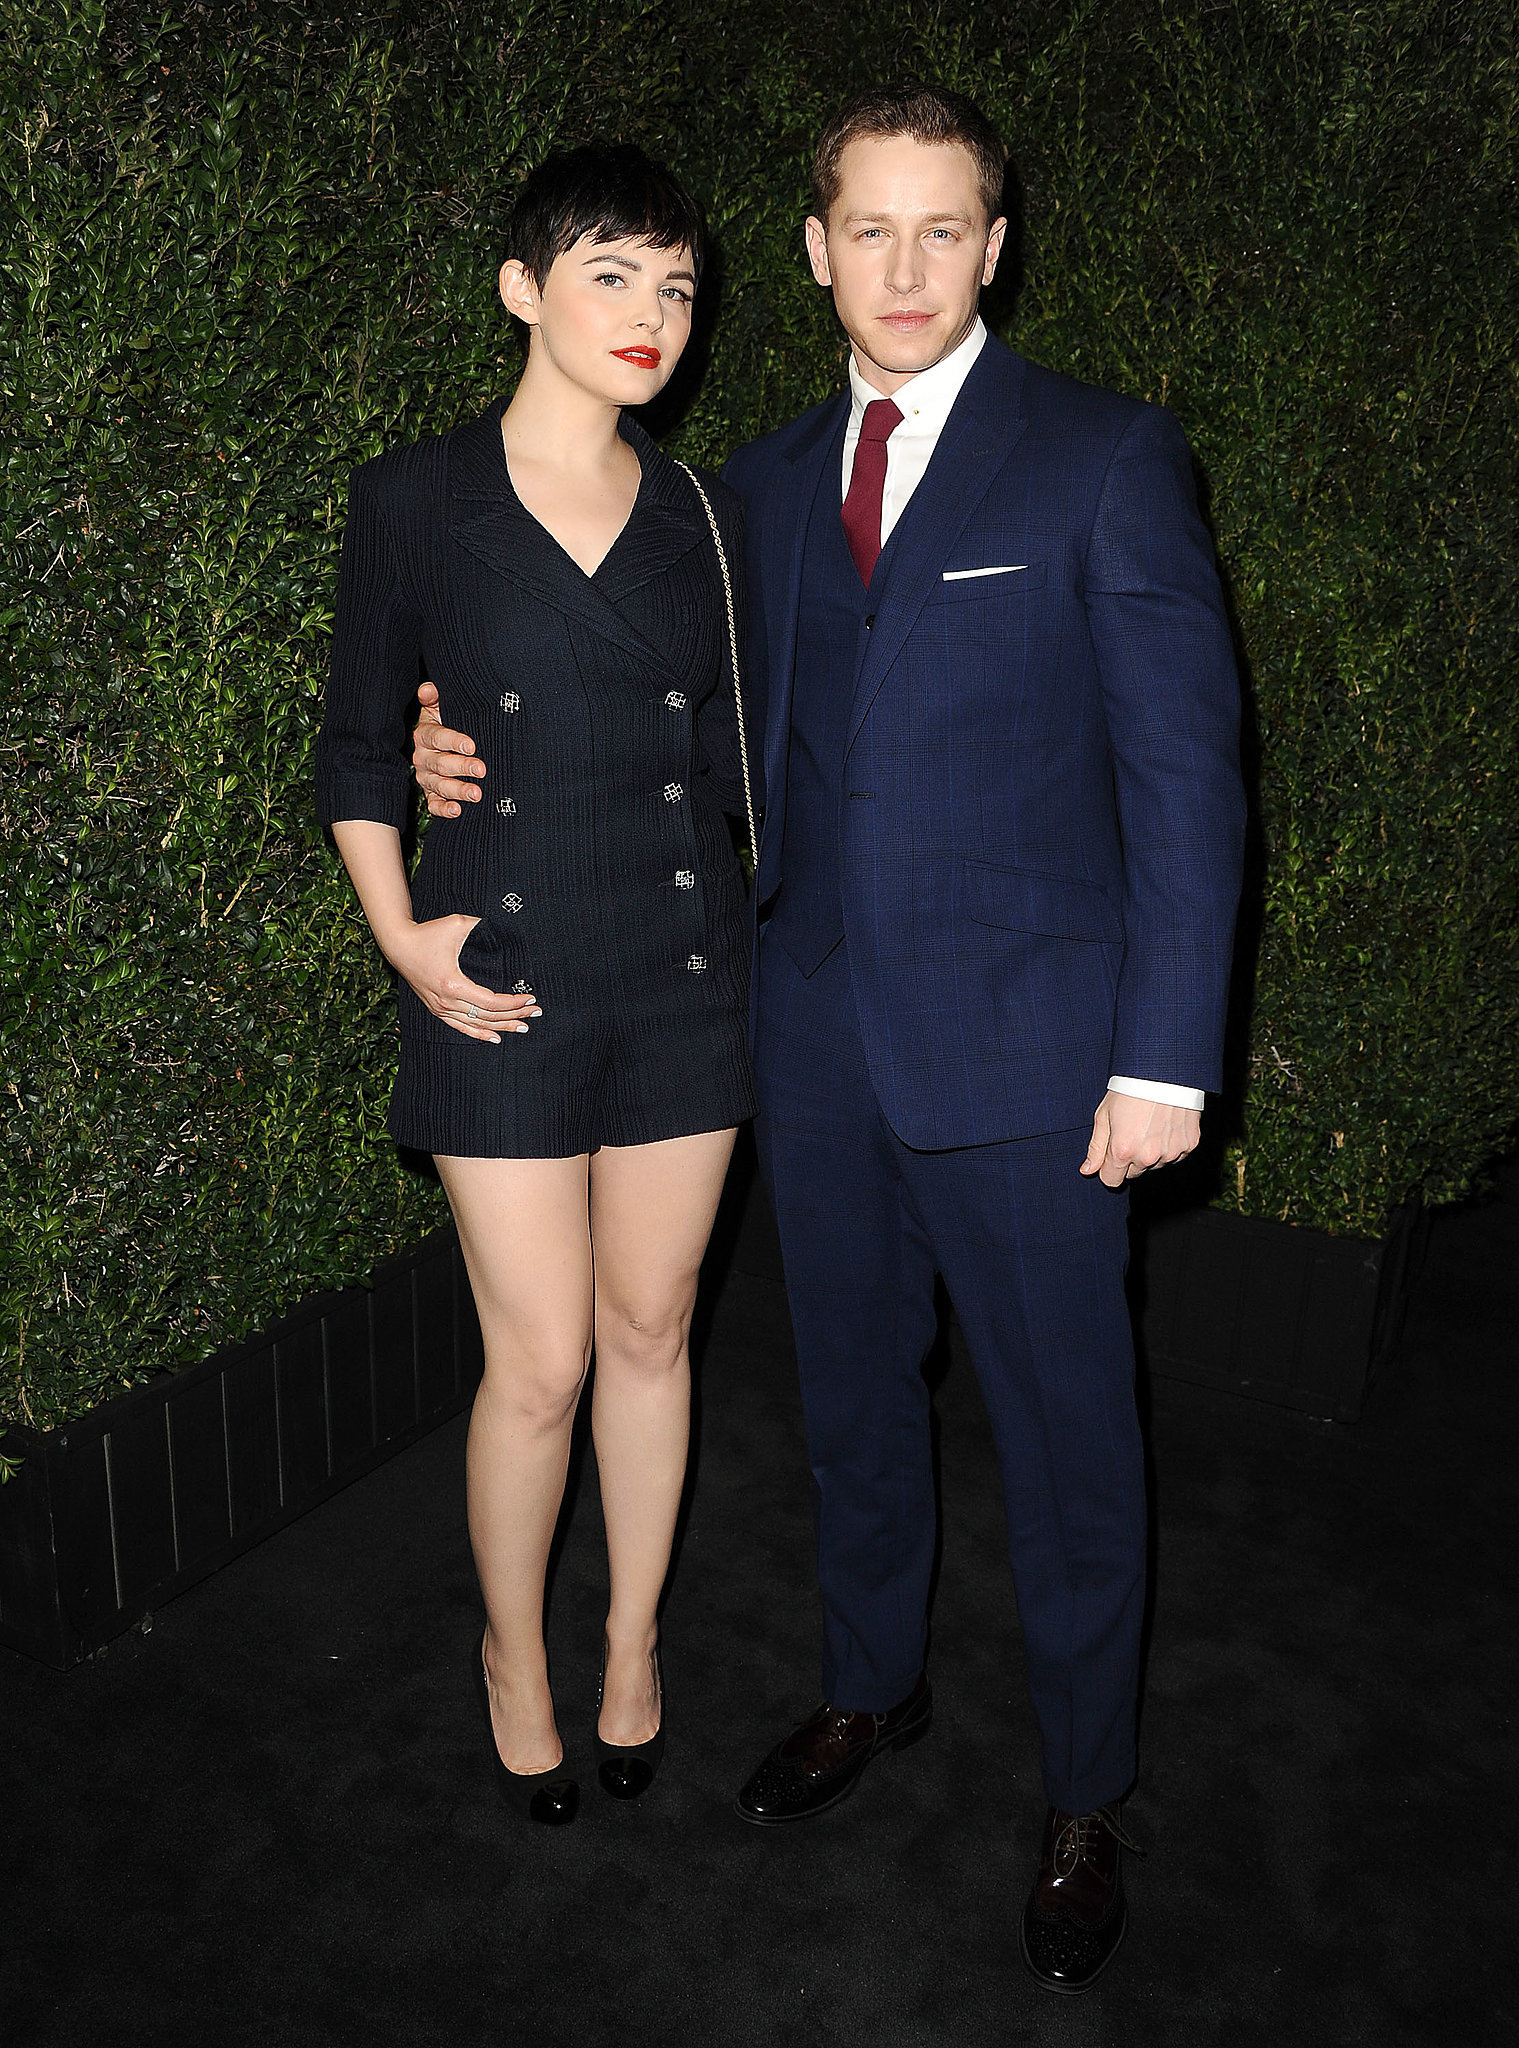 They're one good-looking couple.